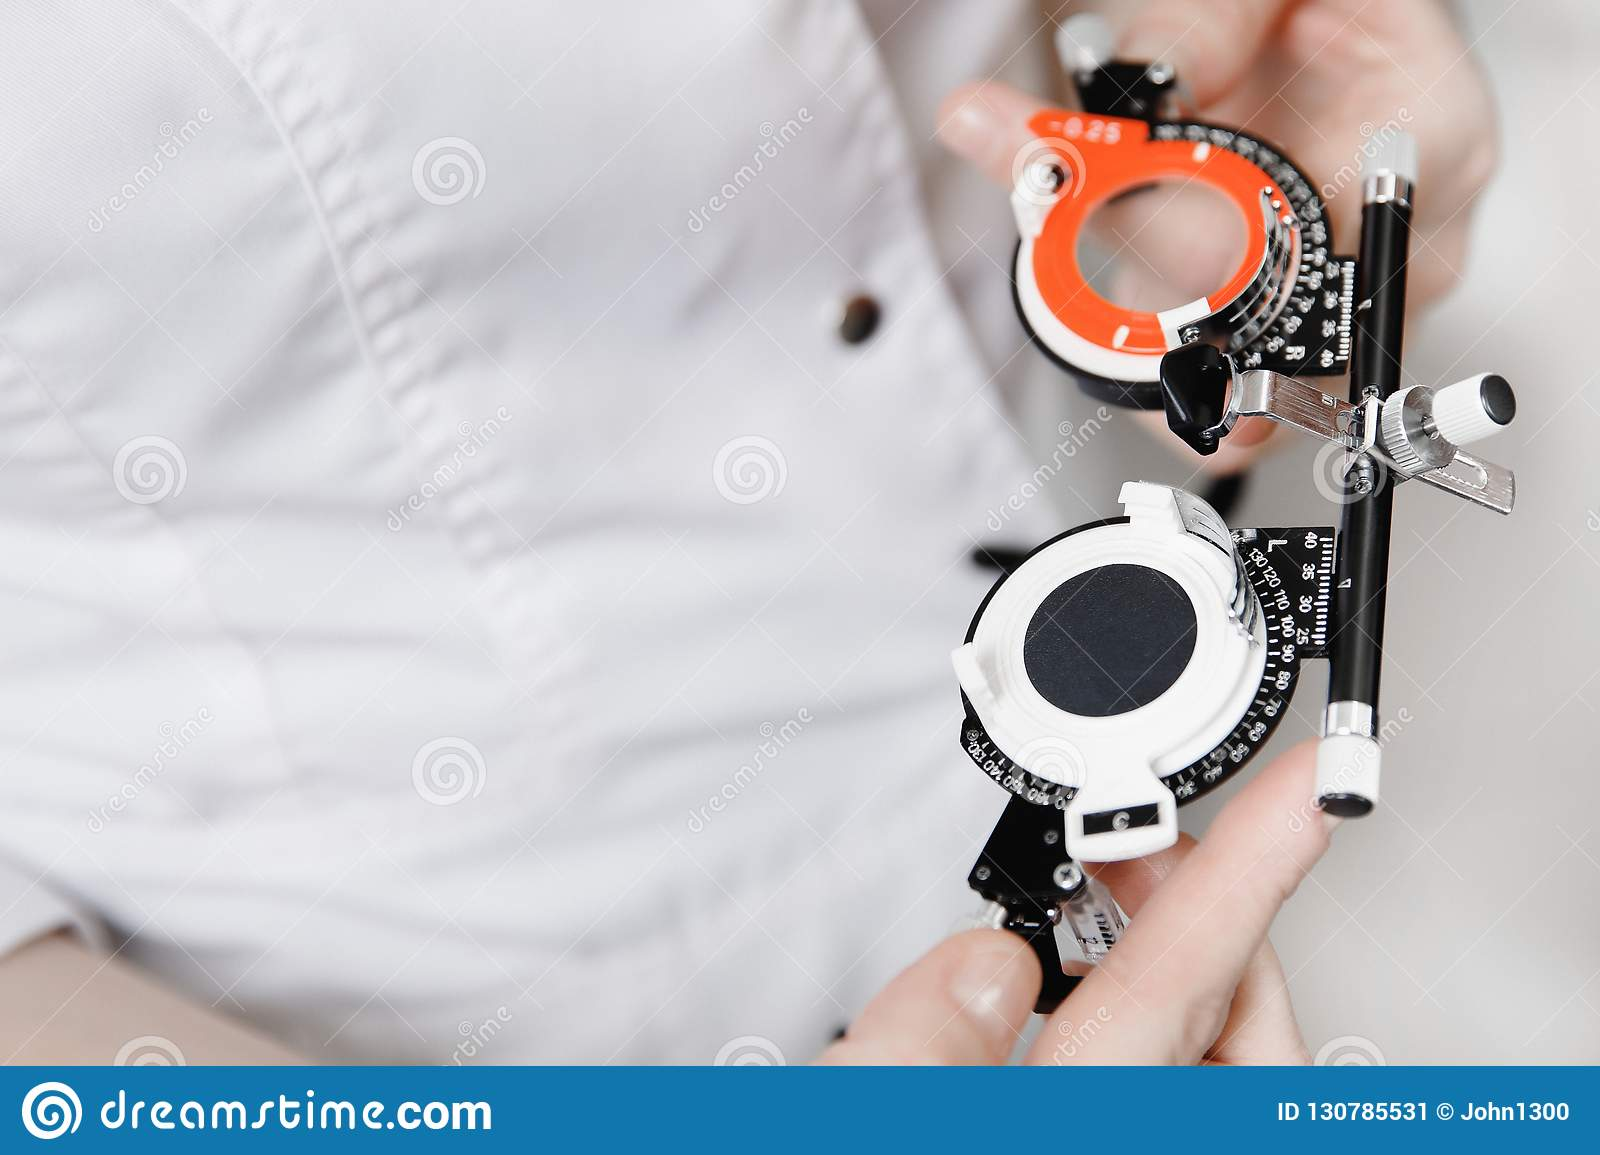 Special diagnostic ophthalmic equipment for vision check and close-up lens selection